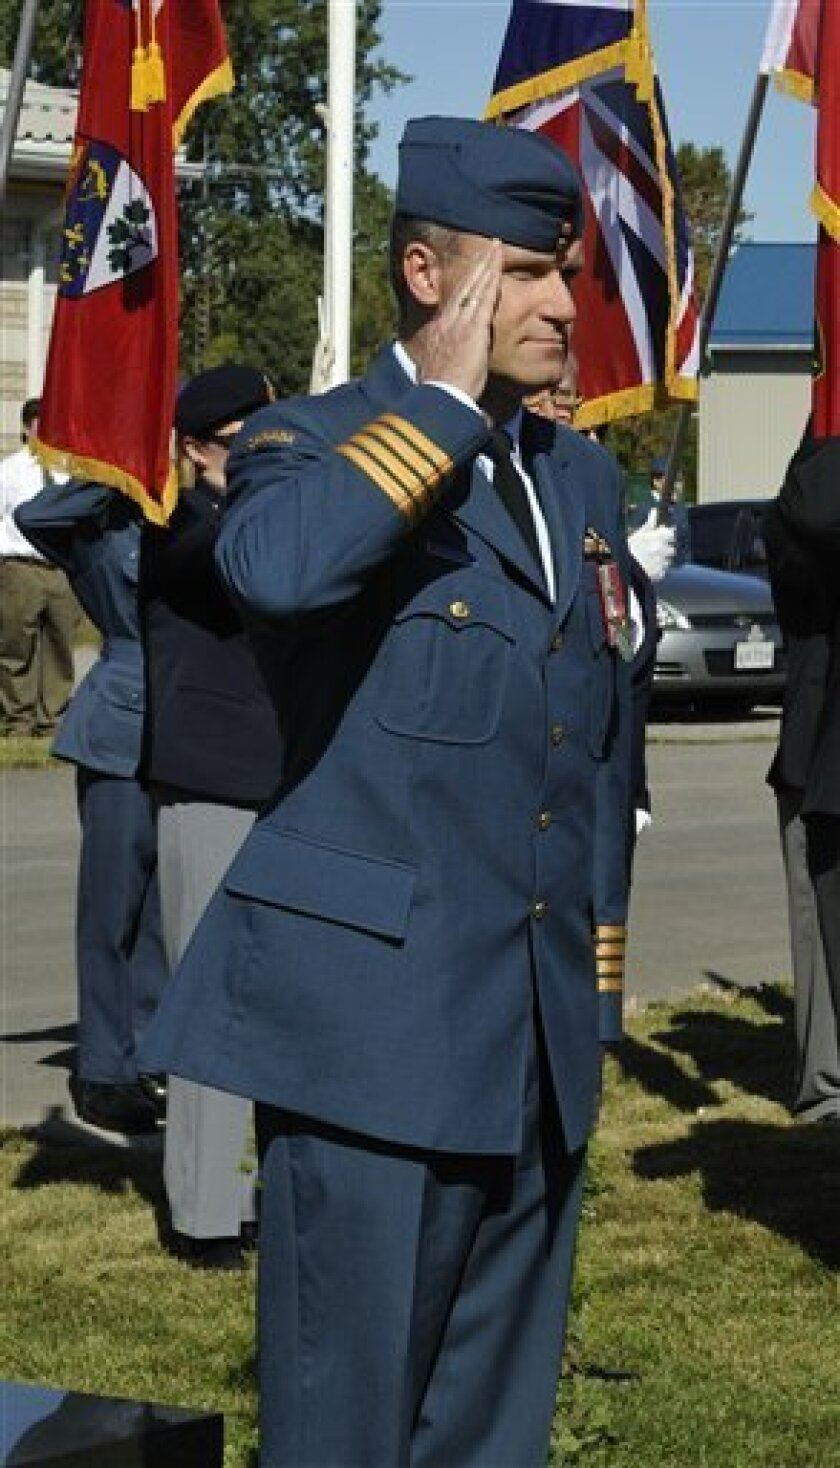 FILE - In this Sept. 20, 2009 file photo provided by the Dept. of National Defense via The Canadian Press, Col. Russell Williams salutes as he arrives at the Battle of Britain parade in Trenton, Ontario. Michael Edelson, Williams' lawyer, told a judge on Thursday, Oct. 7, 2010 that Williams intends to plead guilty to murder, sexual assaults and dozens of breaking and entering charges at his next court appearance on Oct. 18. (AP Photo/Dept. of National Defense via The Canadian Press)